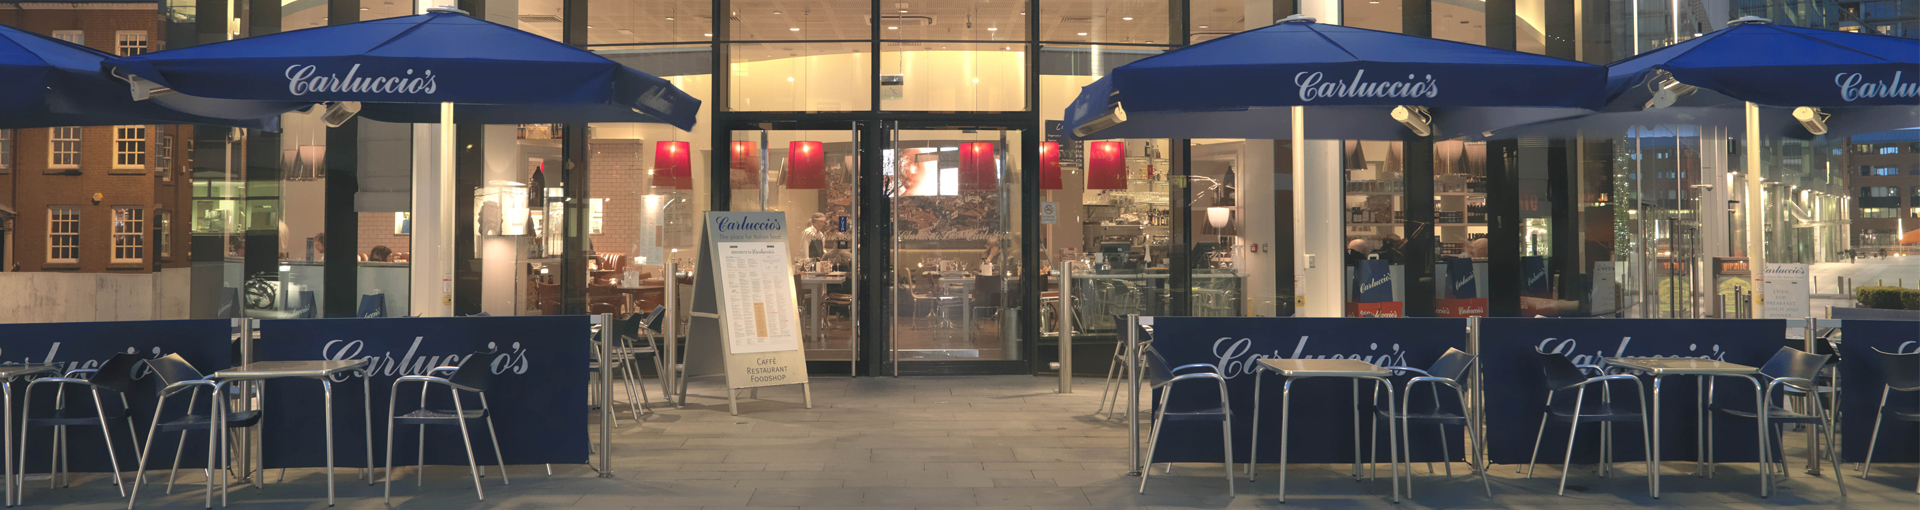 Carluccios, Spinningfields